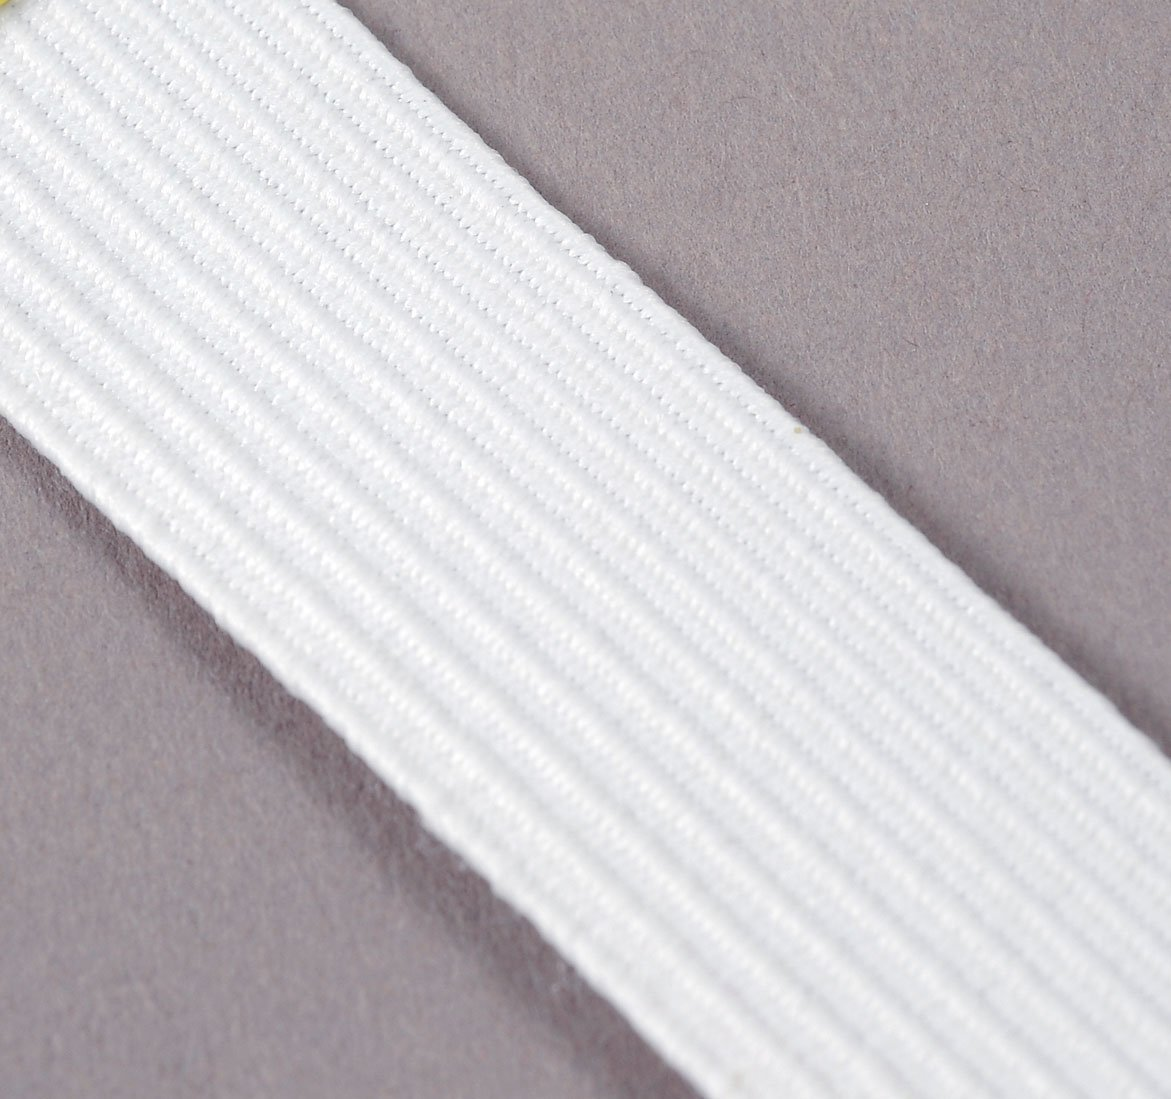 3/4(19mm) x 10y Heavy BRAIDED Elastic - Tutu Waistband (Color White) by MJ's Crafts & More   B00JBW2AGA